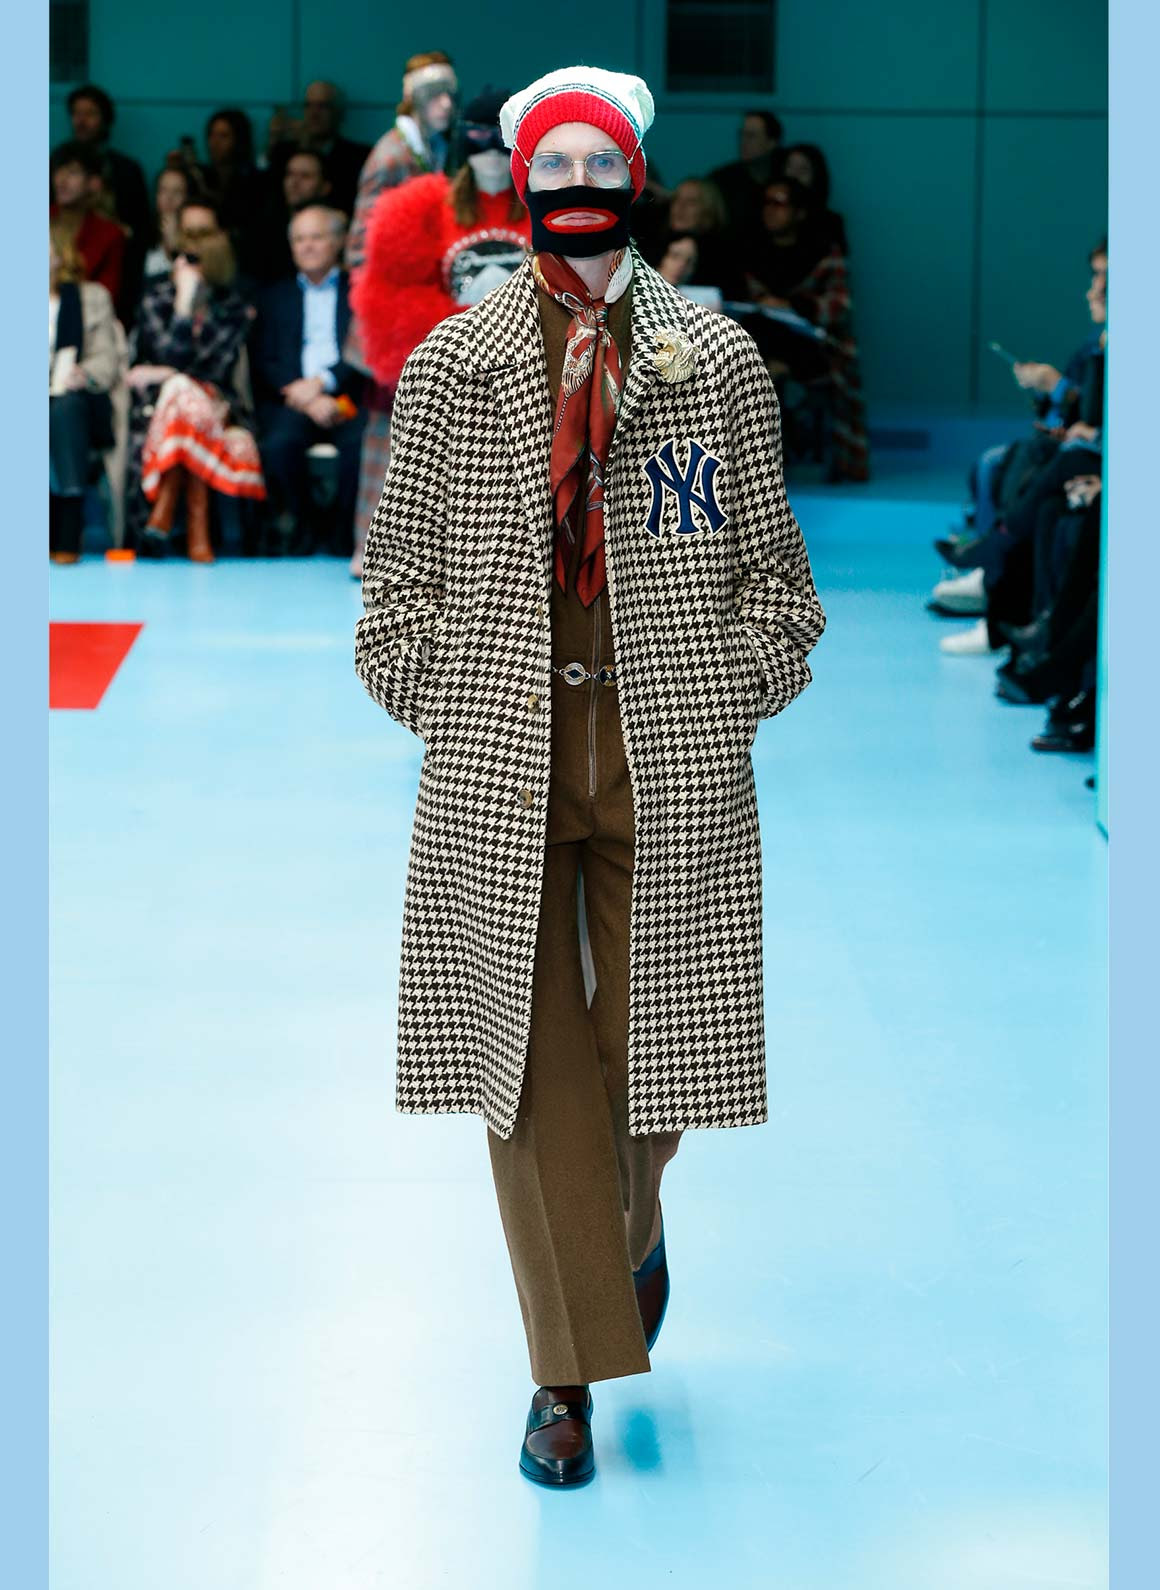 ba16bcece174f Gucci Houndstooth Coat with New York Yankees Patches - inCity Magazine